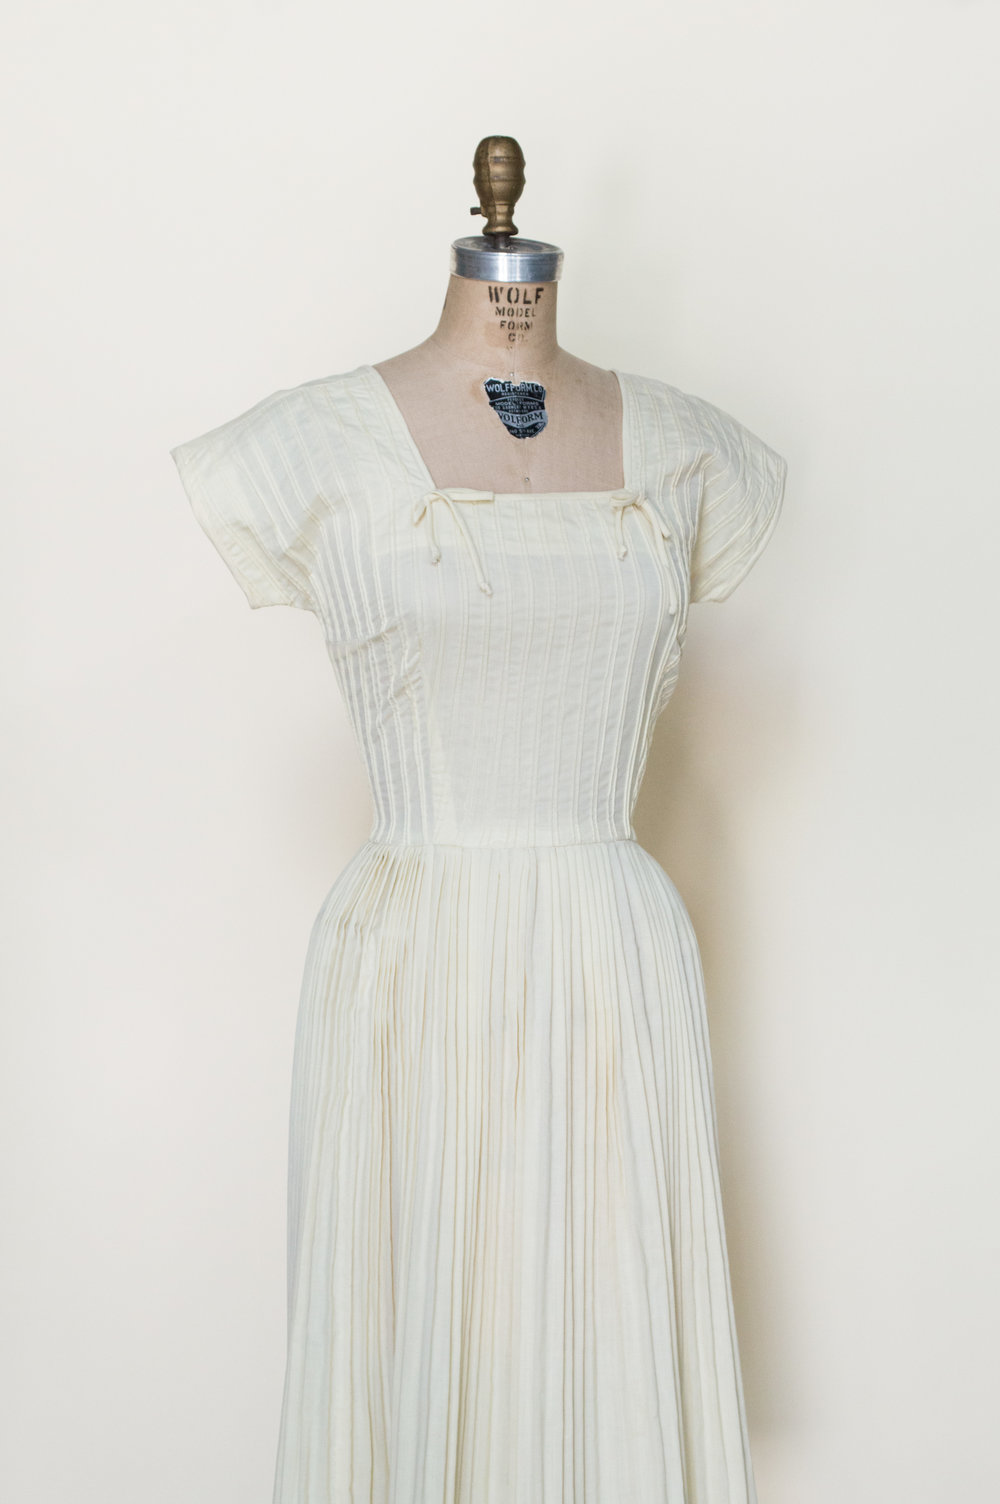 Darling yellow vintage dress from the 1950s